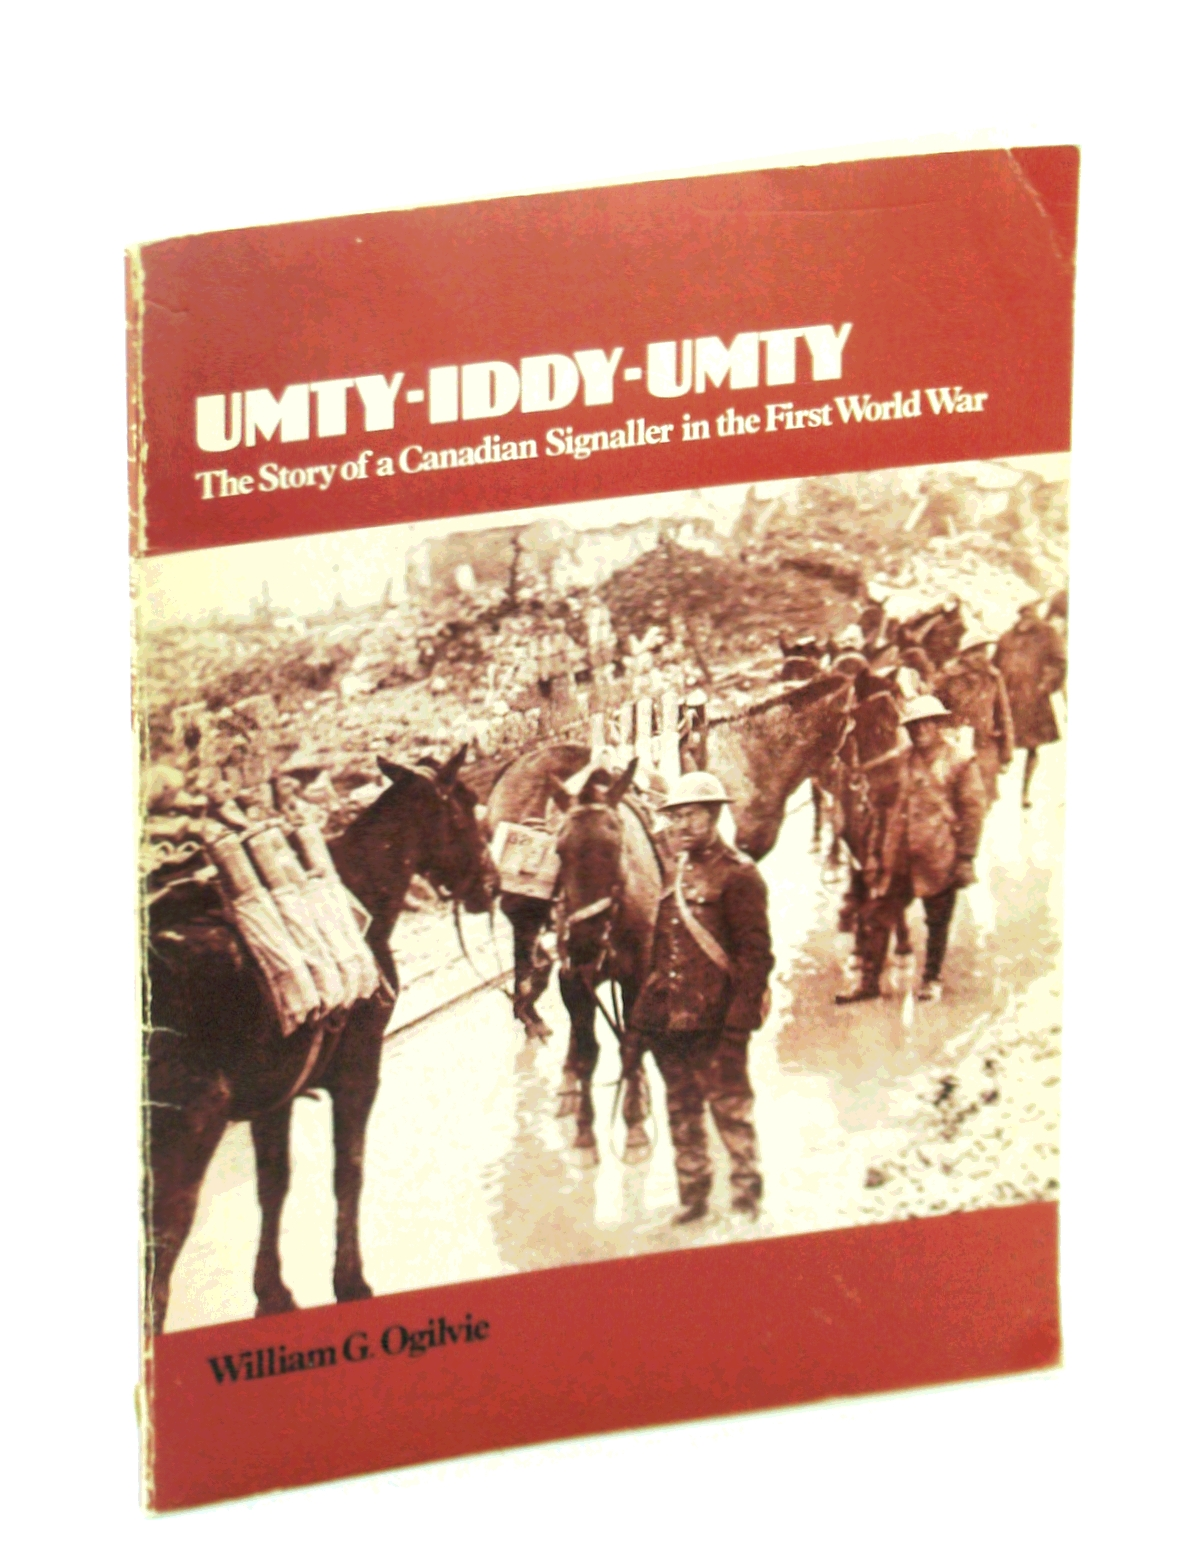 Image for Umty-iddy-umty: The story of a Canadian signaller in the First World War